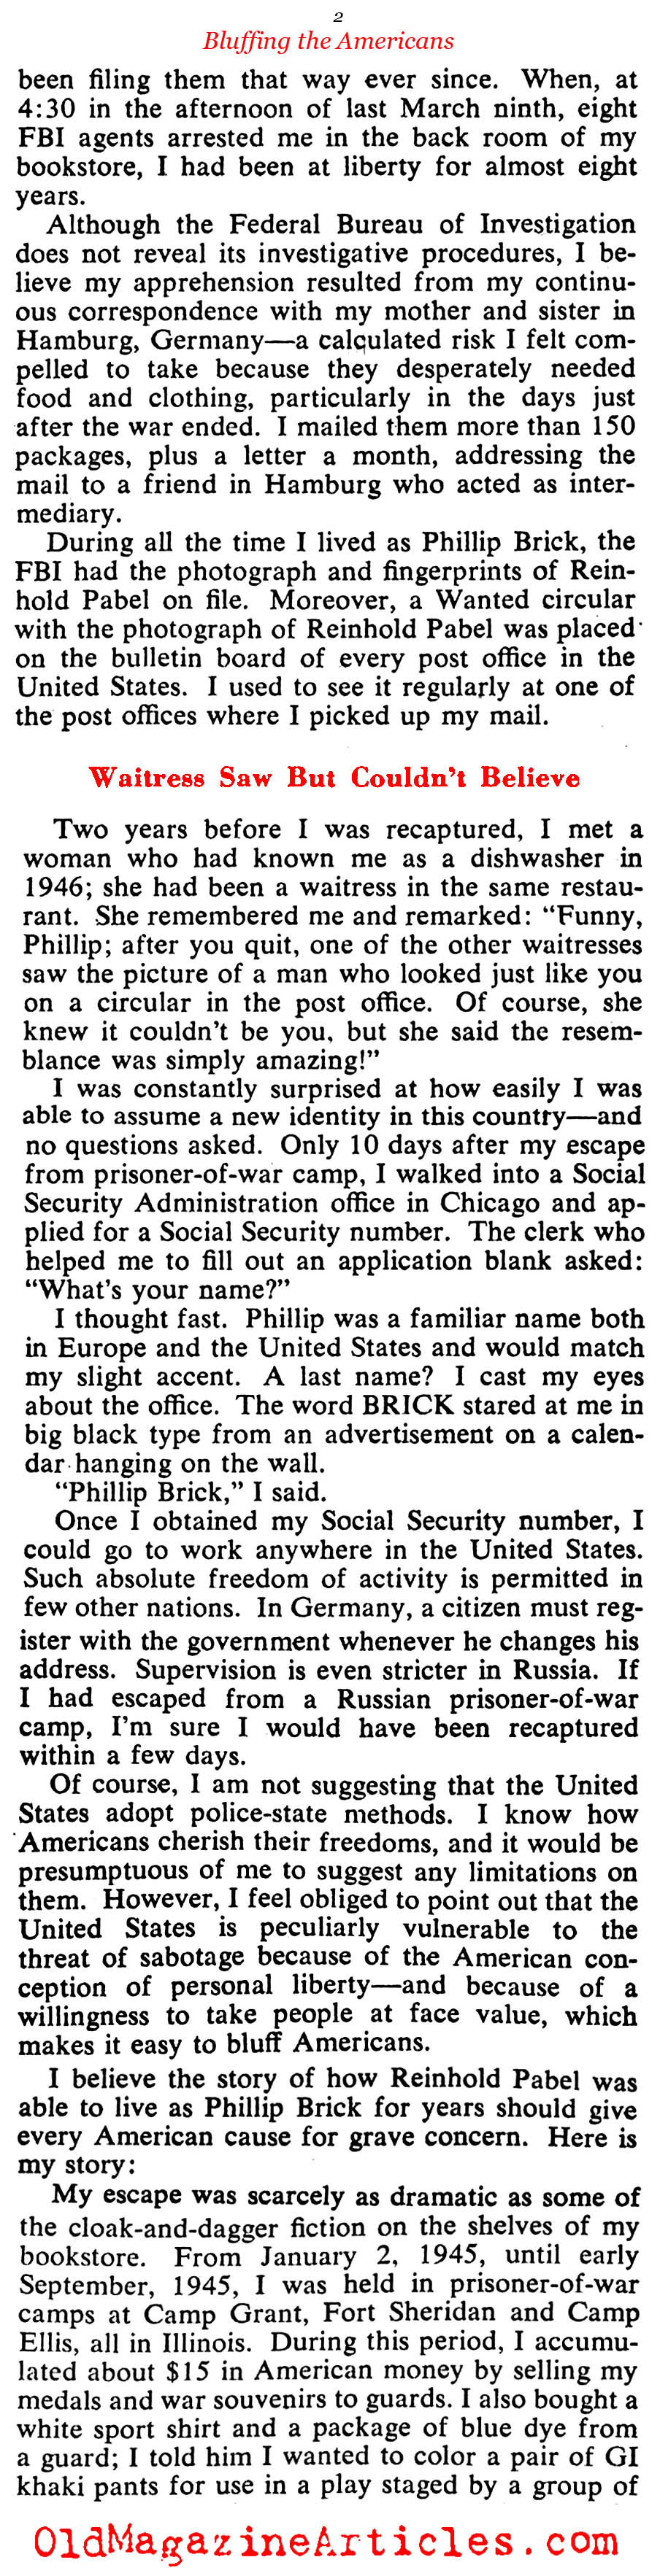 The German Who Escaped (Collier's Magazine, 1953)